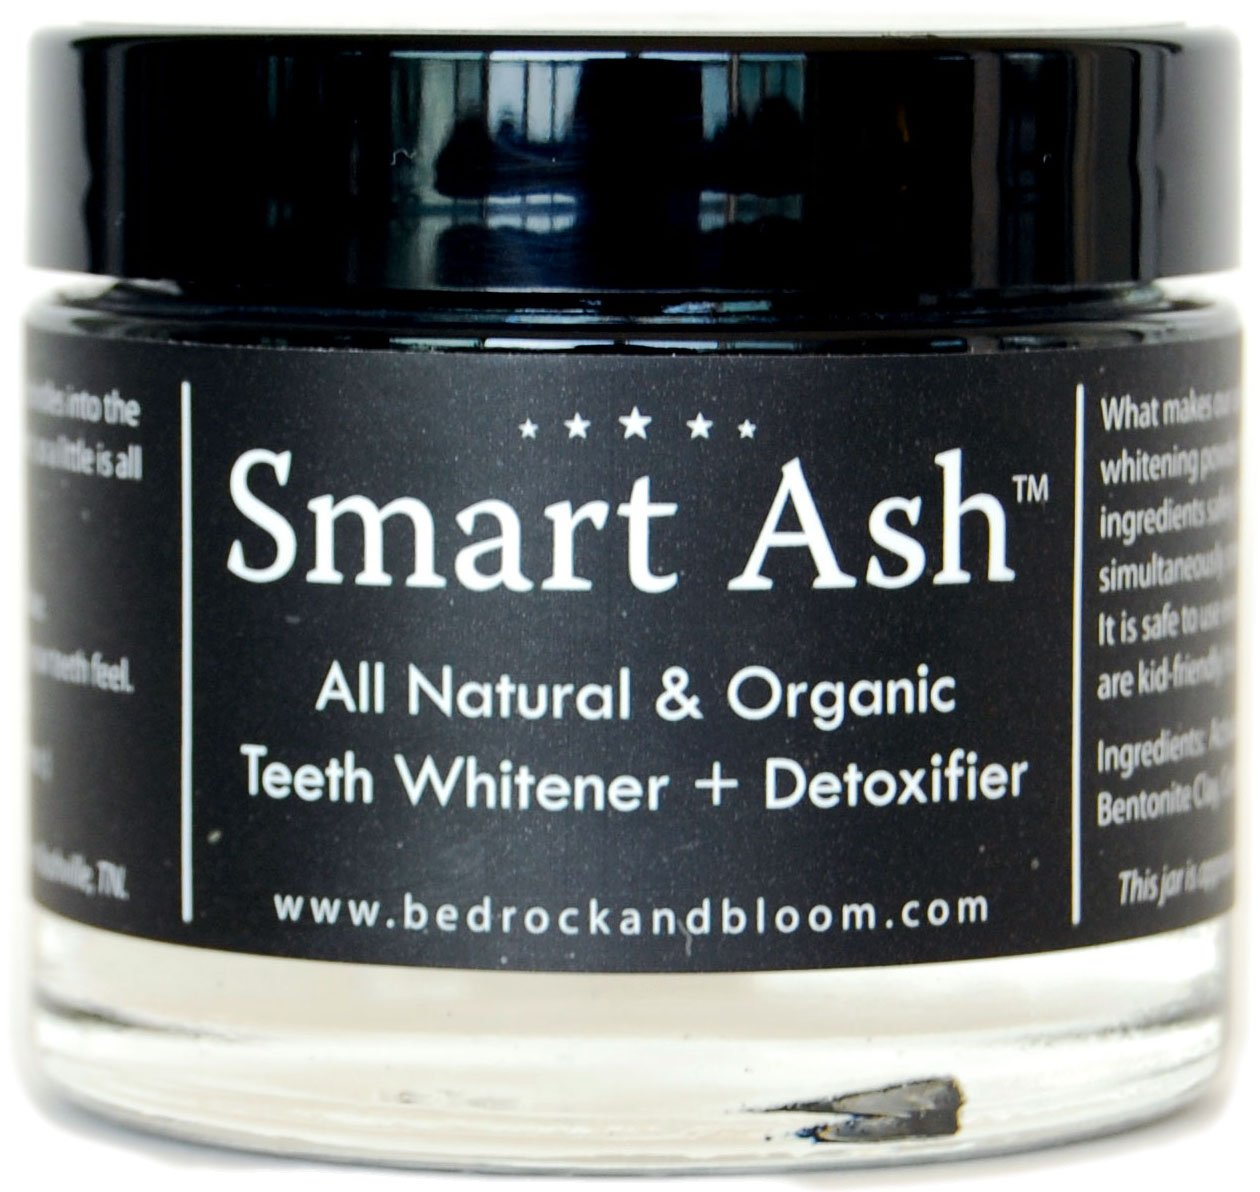 Smart Ash Organic All Natural Whitening Tooth Powder for Sensitive Teeth with Activated Charcoal & Bentonite Clay By Bedrock & Bloom, Whitener, Desensitizing, Toothpaste Alternative (5)